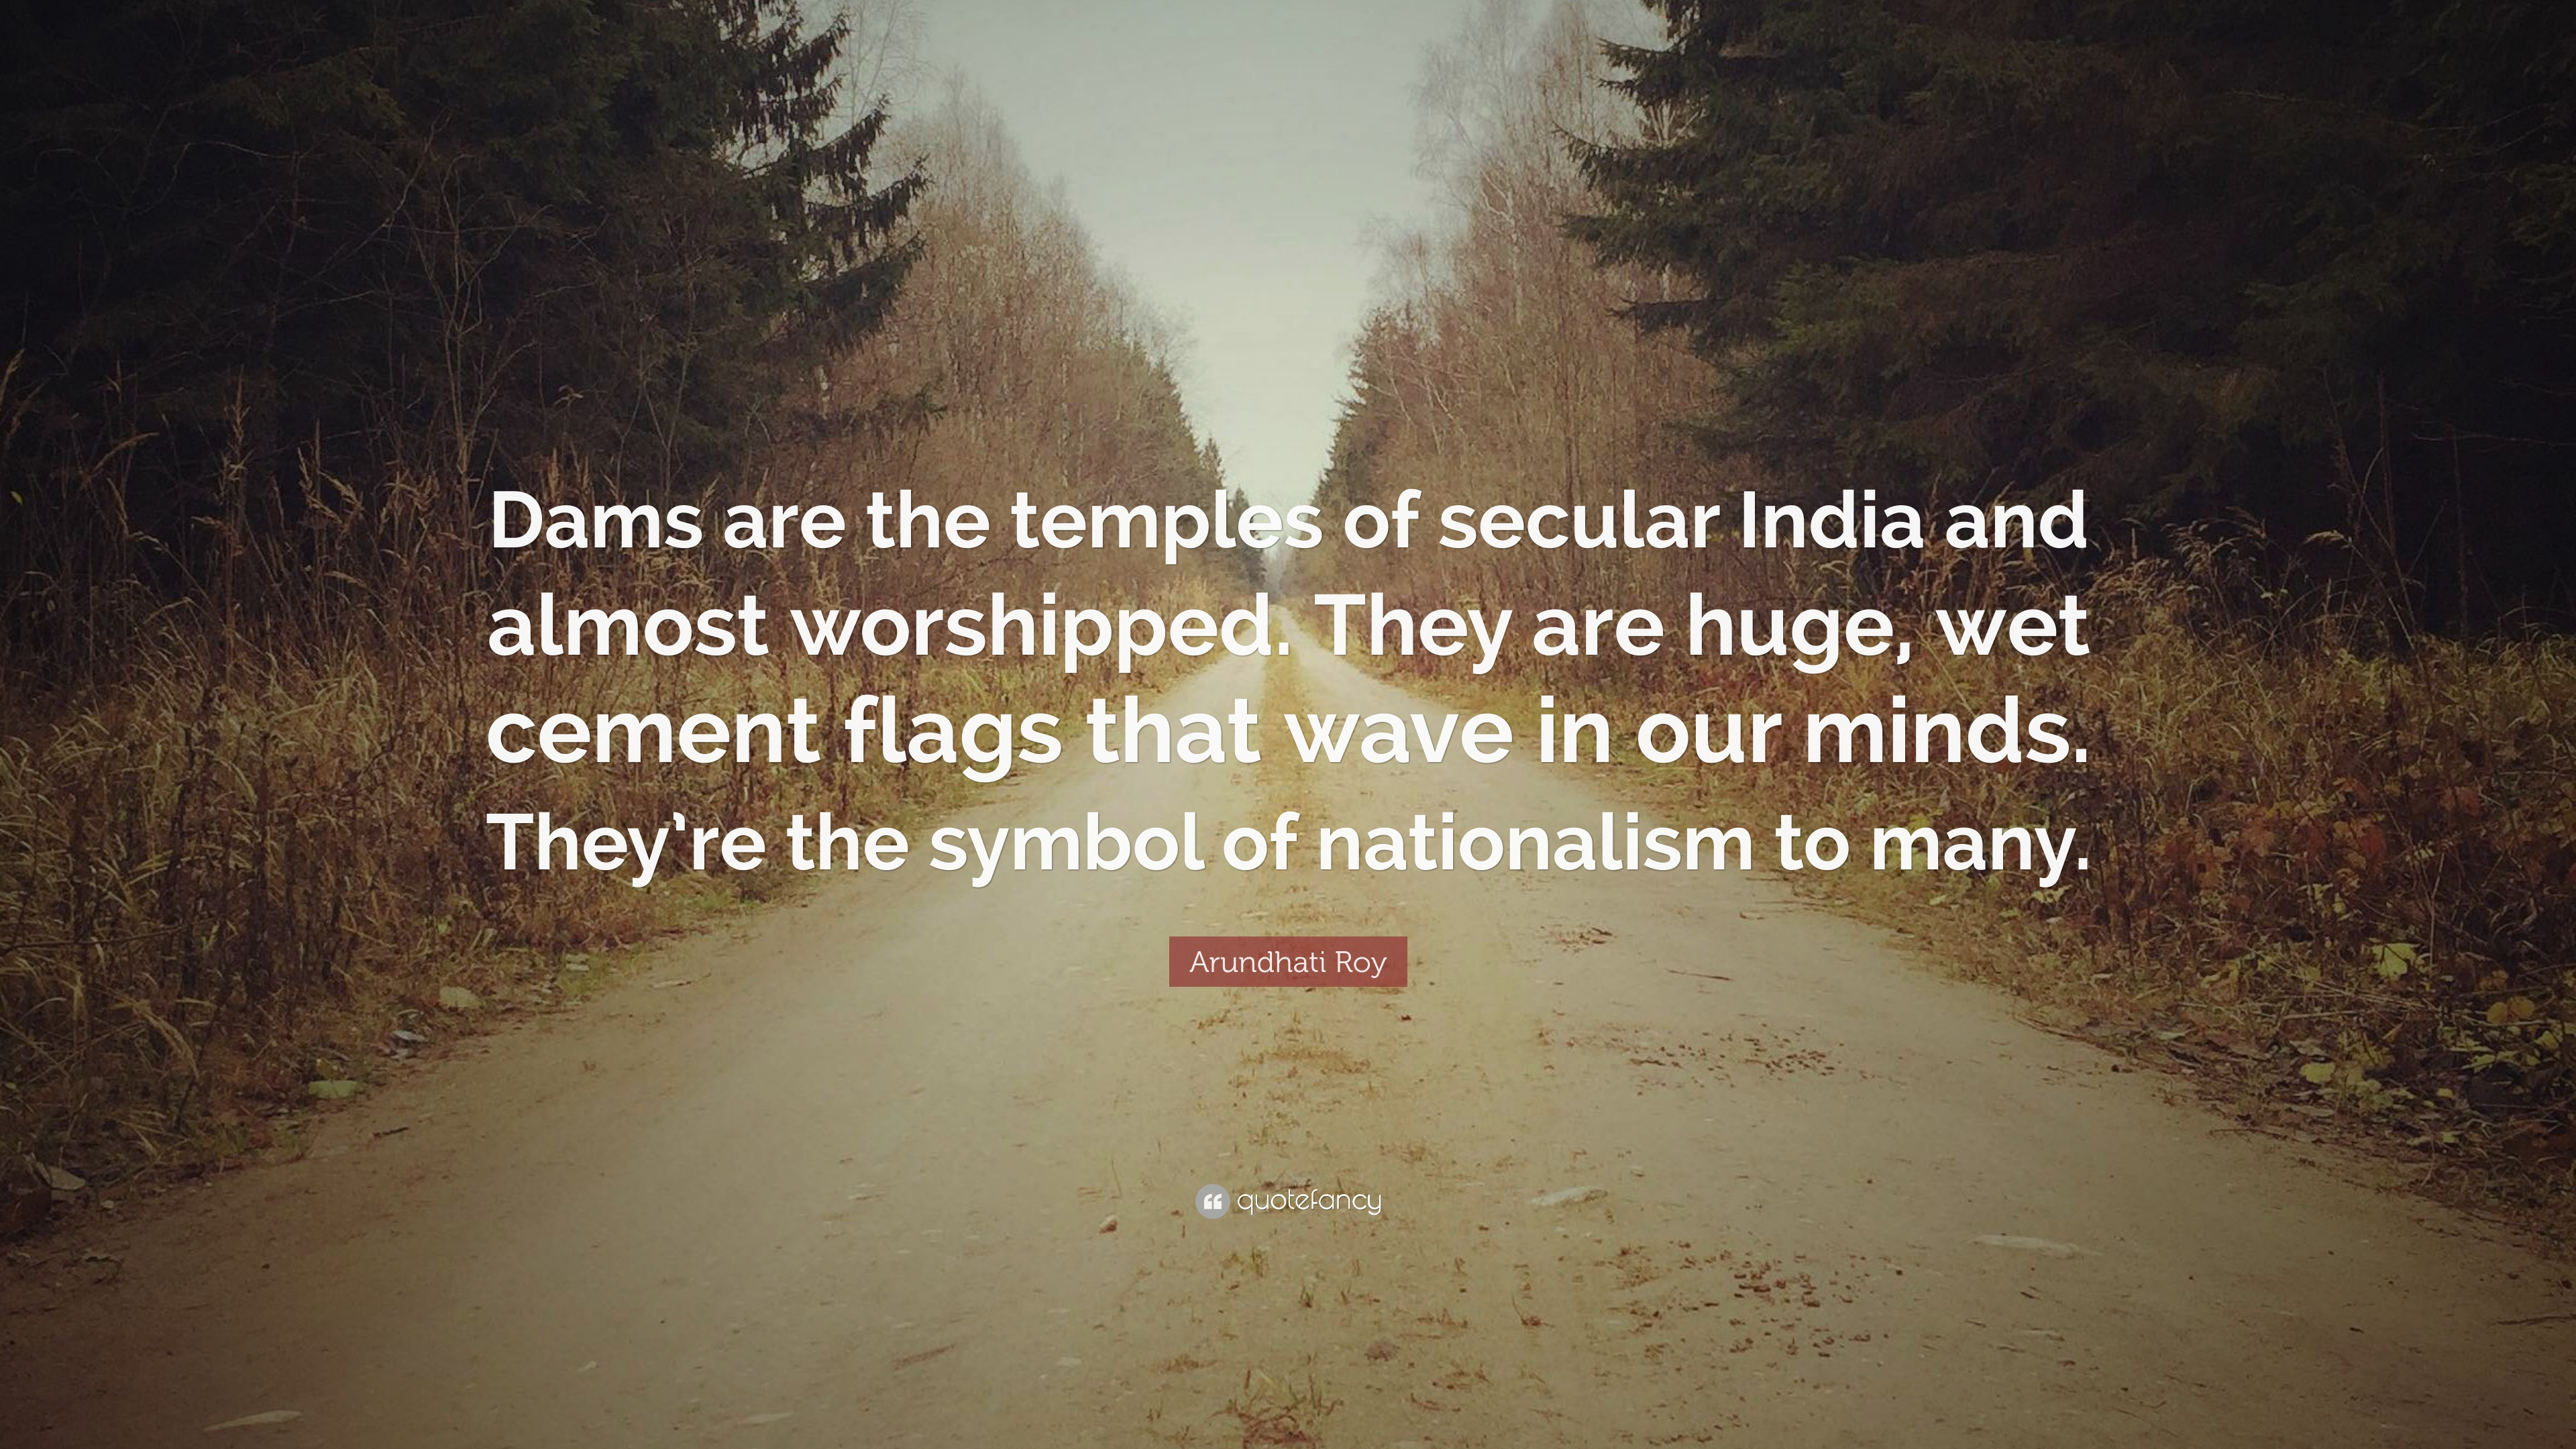 Arundhati roy quote dams are the temples of secular india and arundhati roy quote dams are the temples of secular india and almost worshipped buycottarizona